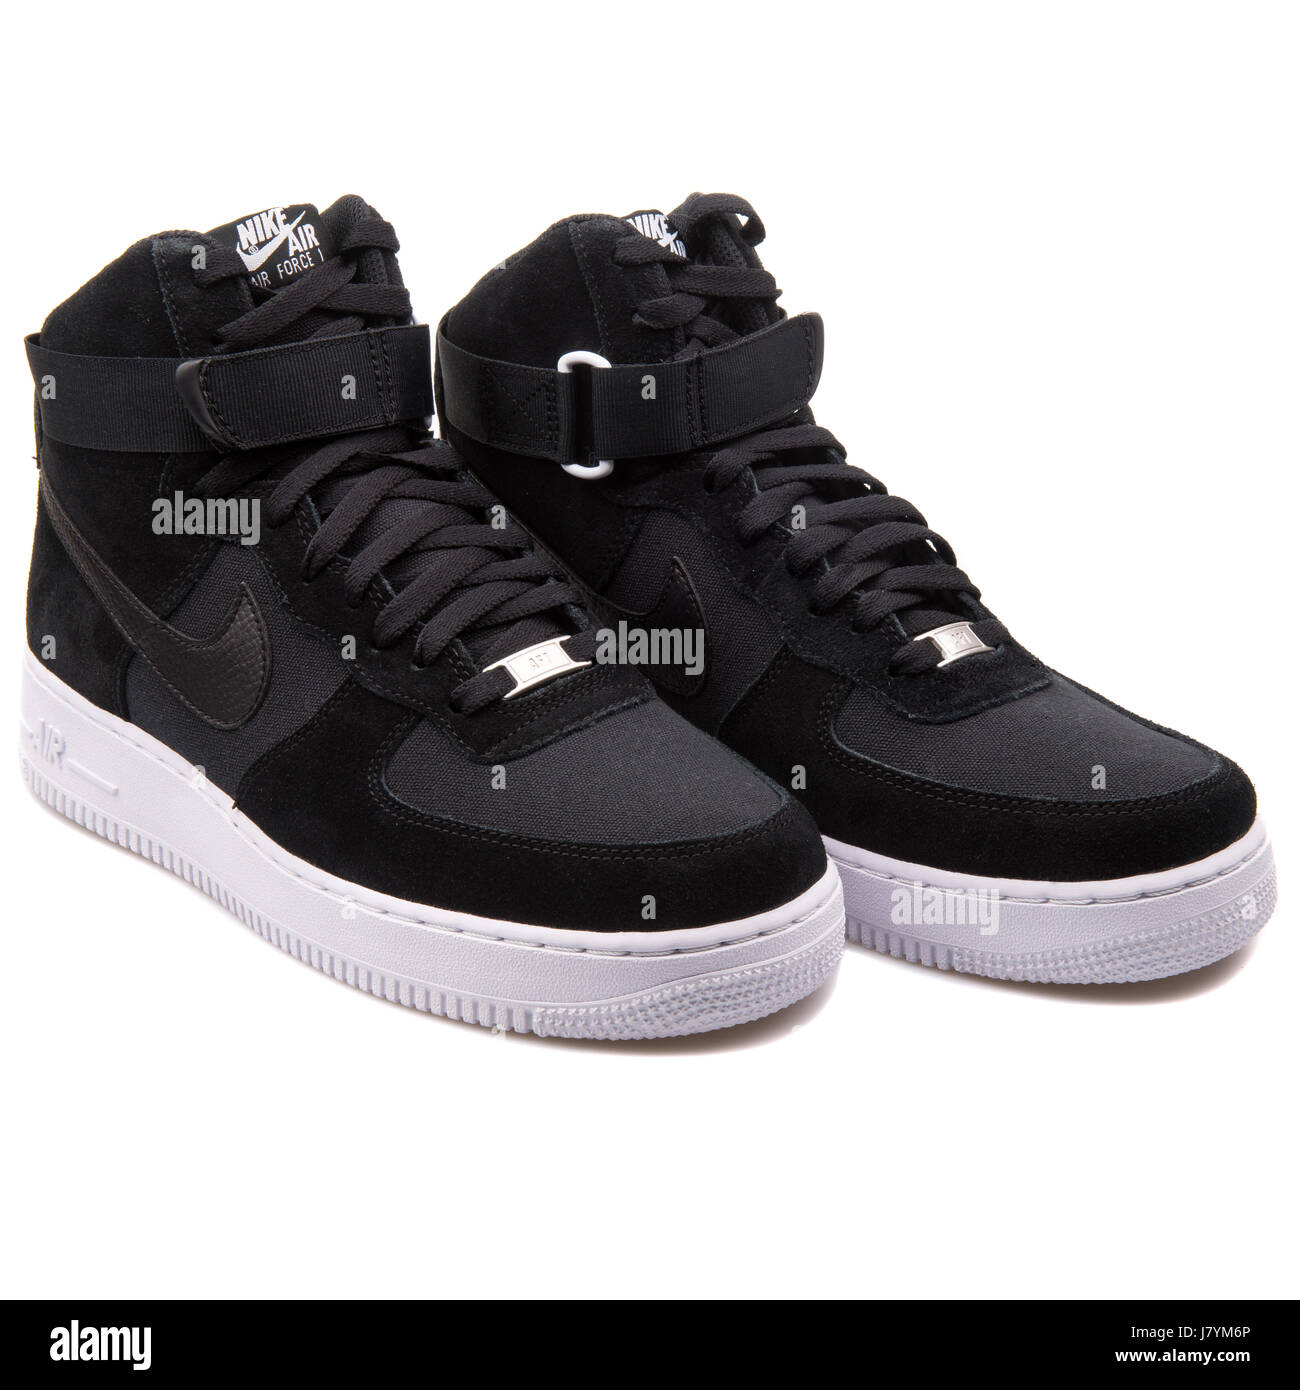 reputable site b4f0f 7a0a9 Nike Air Force 1 High  07 Black Men Leather Sneakers - 315121-033 -